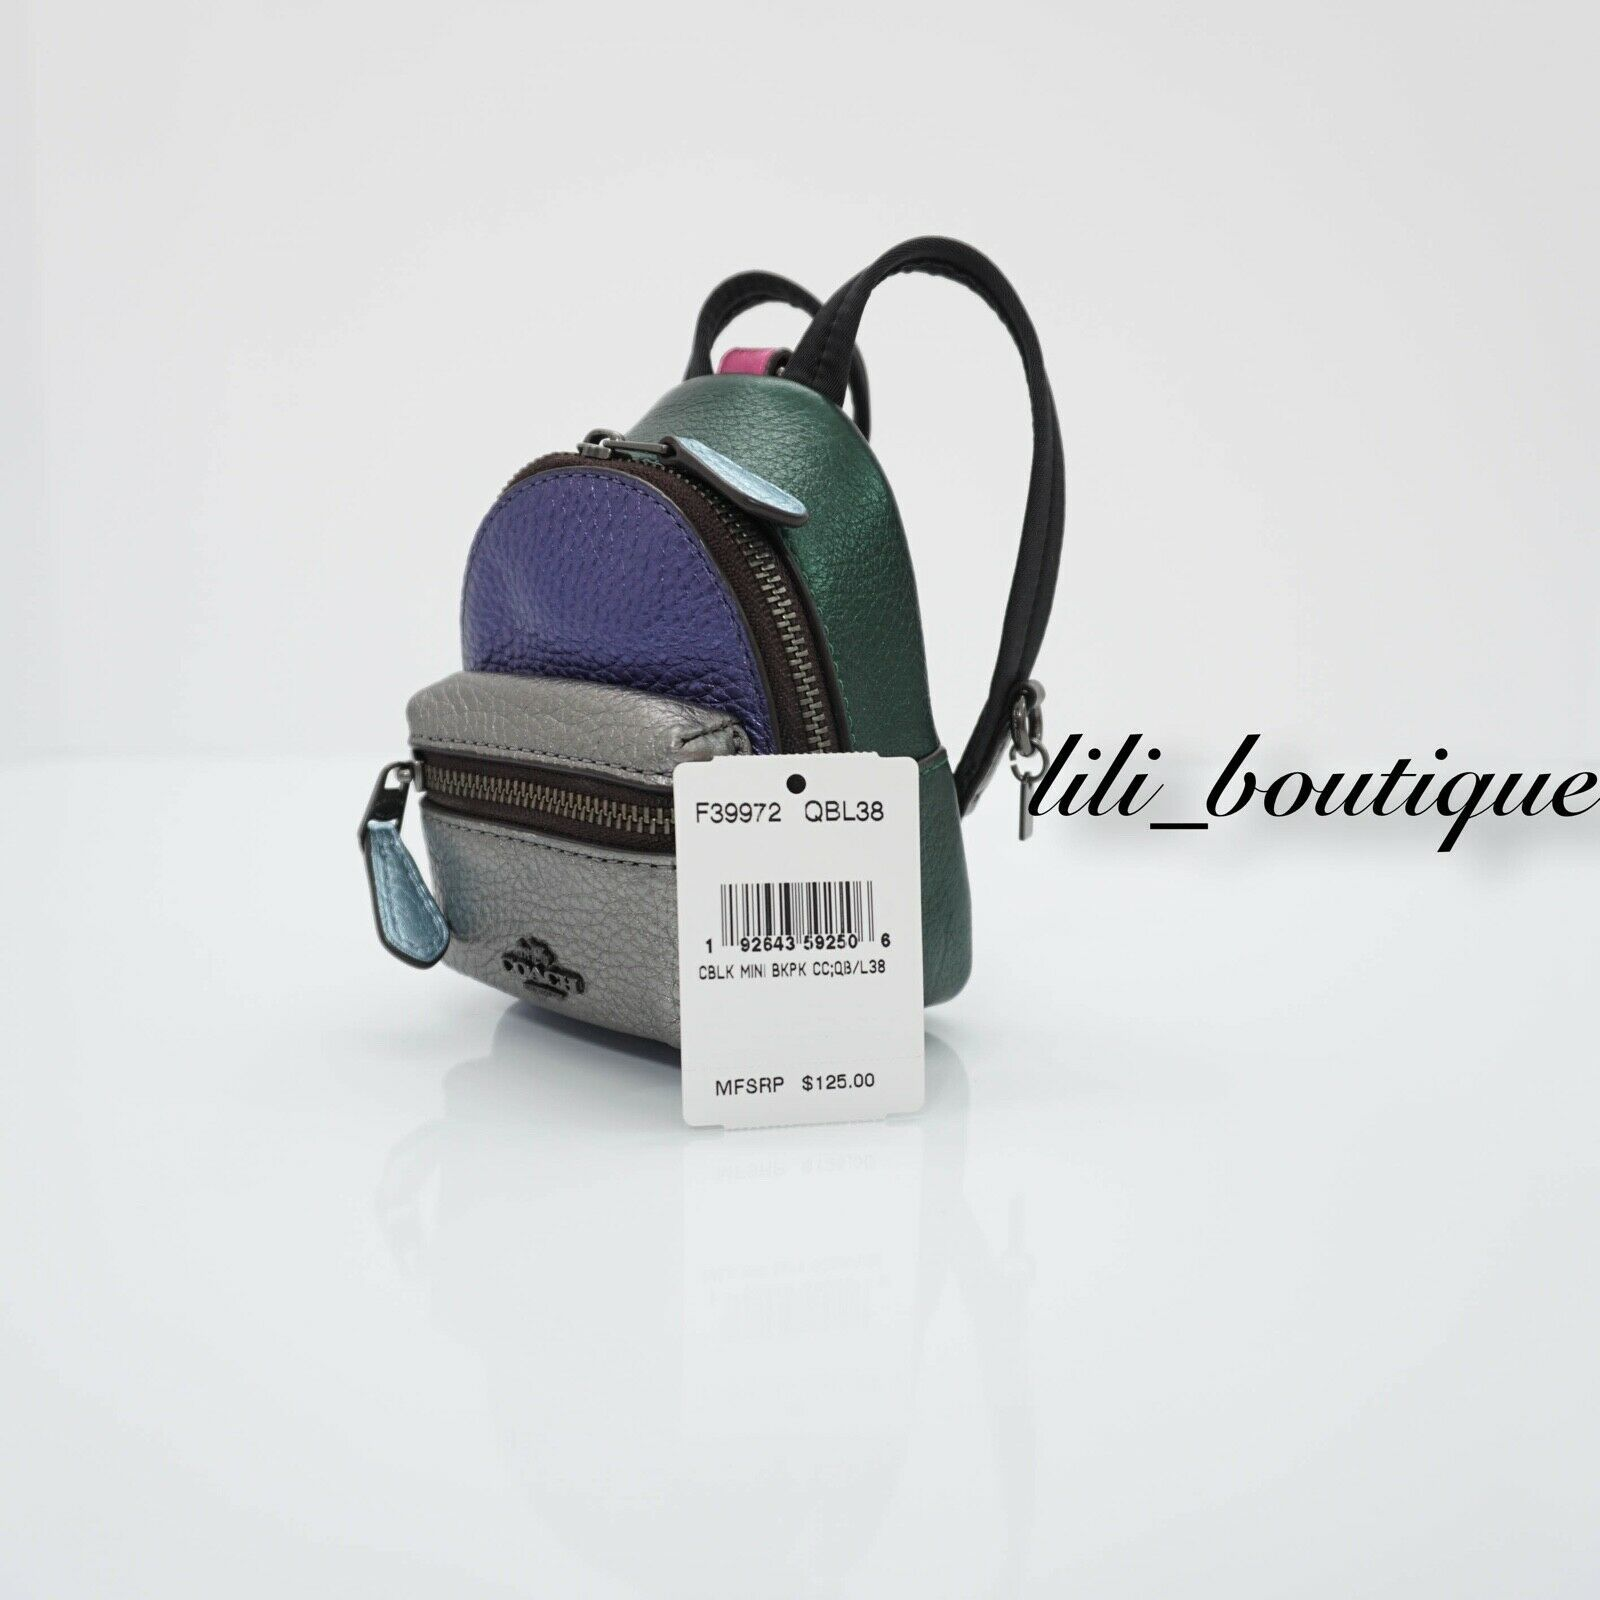 NWT Coach F39972 Metallic Colorblock Mini Backpack Coin Bag Charm Keyring $125 image 7